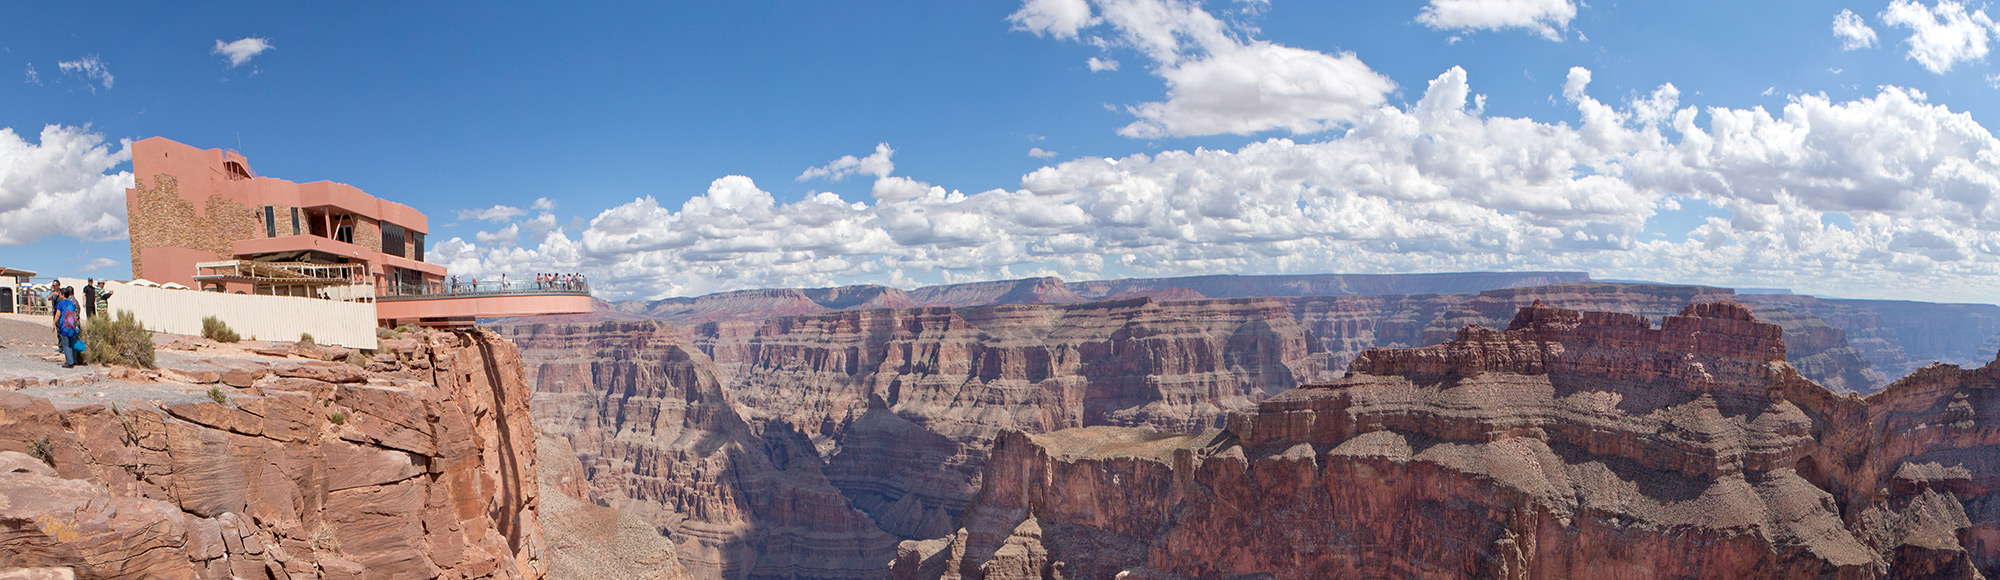 Grand Canyon West Rim 5 in 1 tour